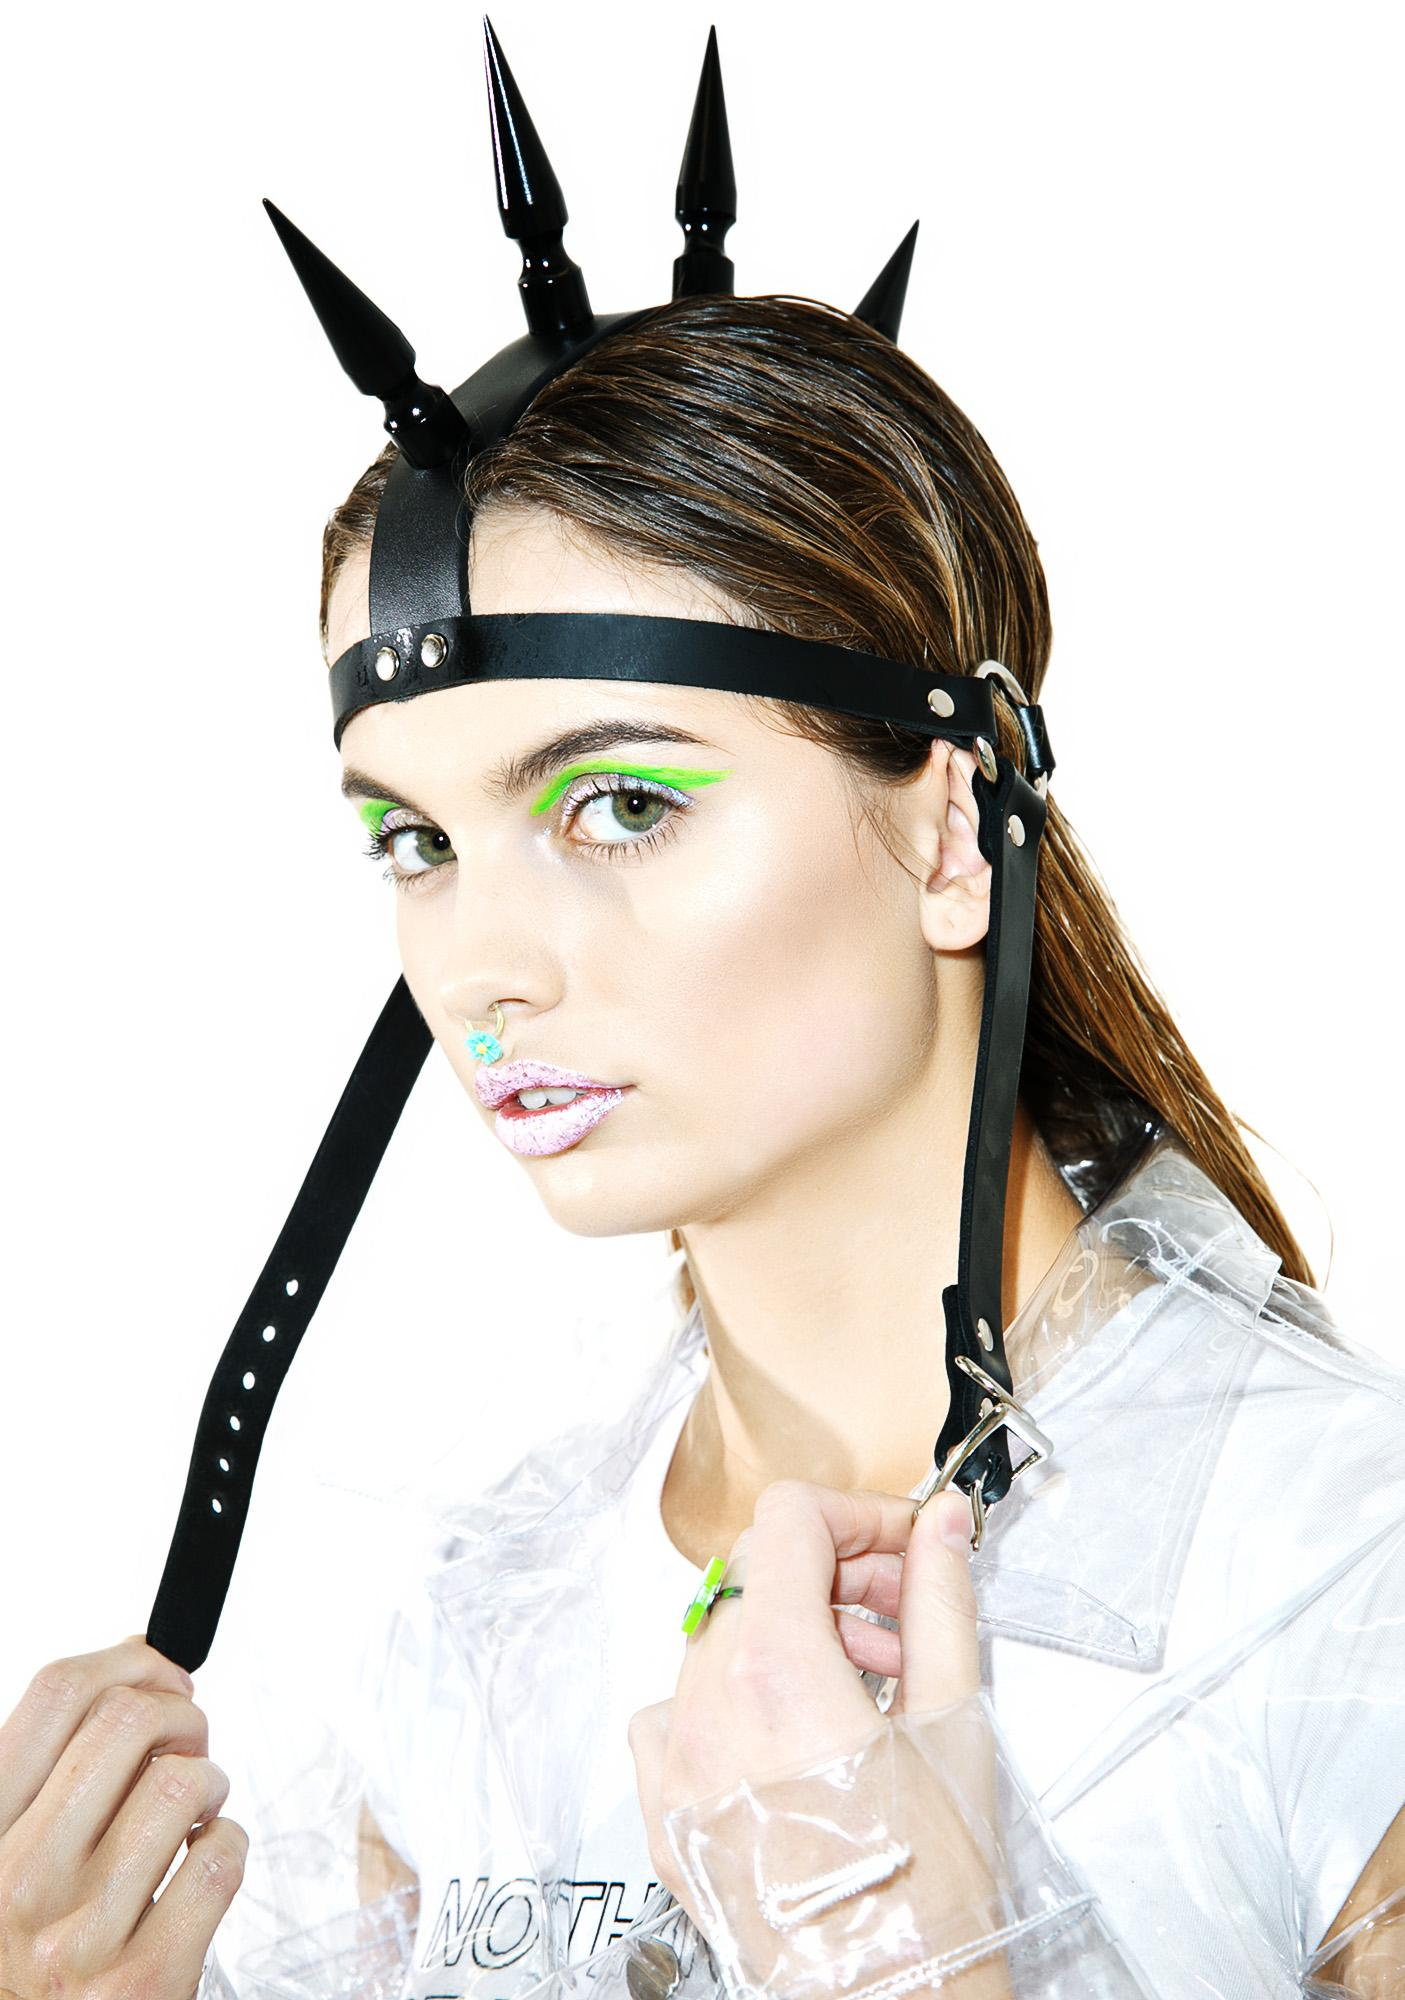 Manic Mohawk Headpiece